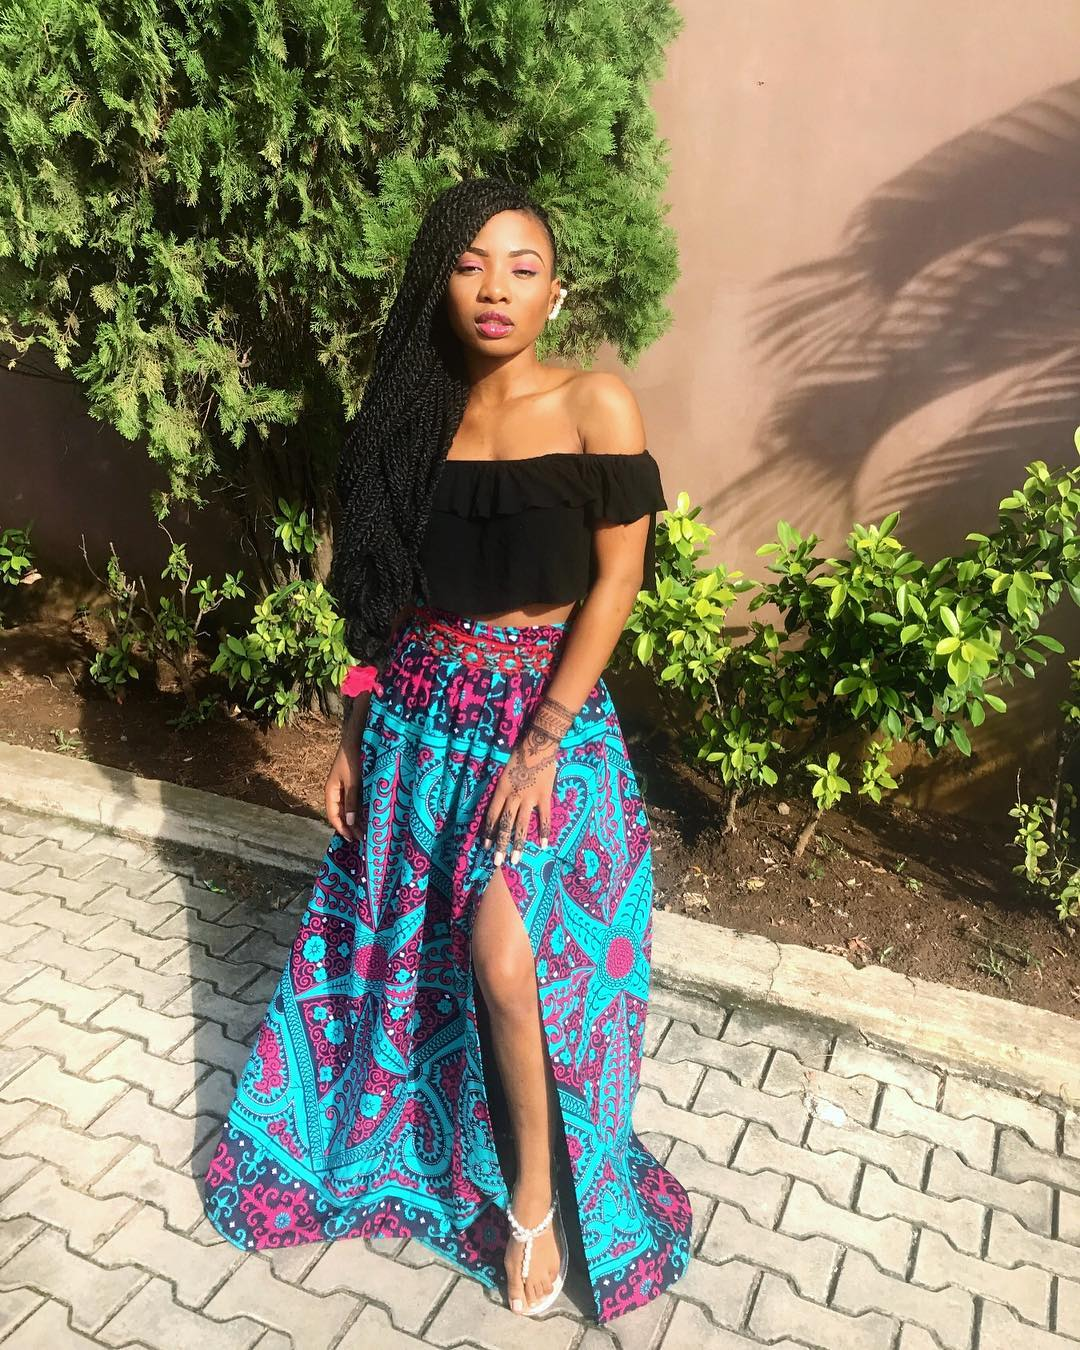 mo cheddah2 - Mo Cheddah Shows Us The Right Way To Wear Print